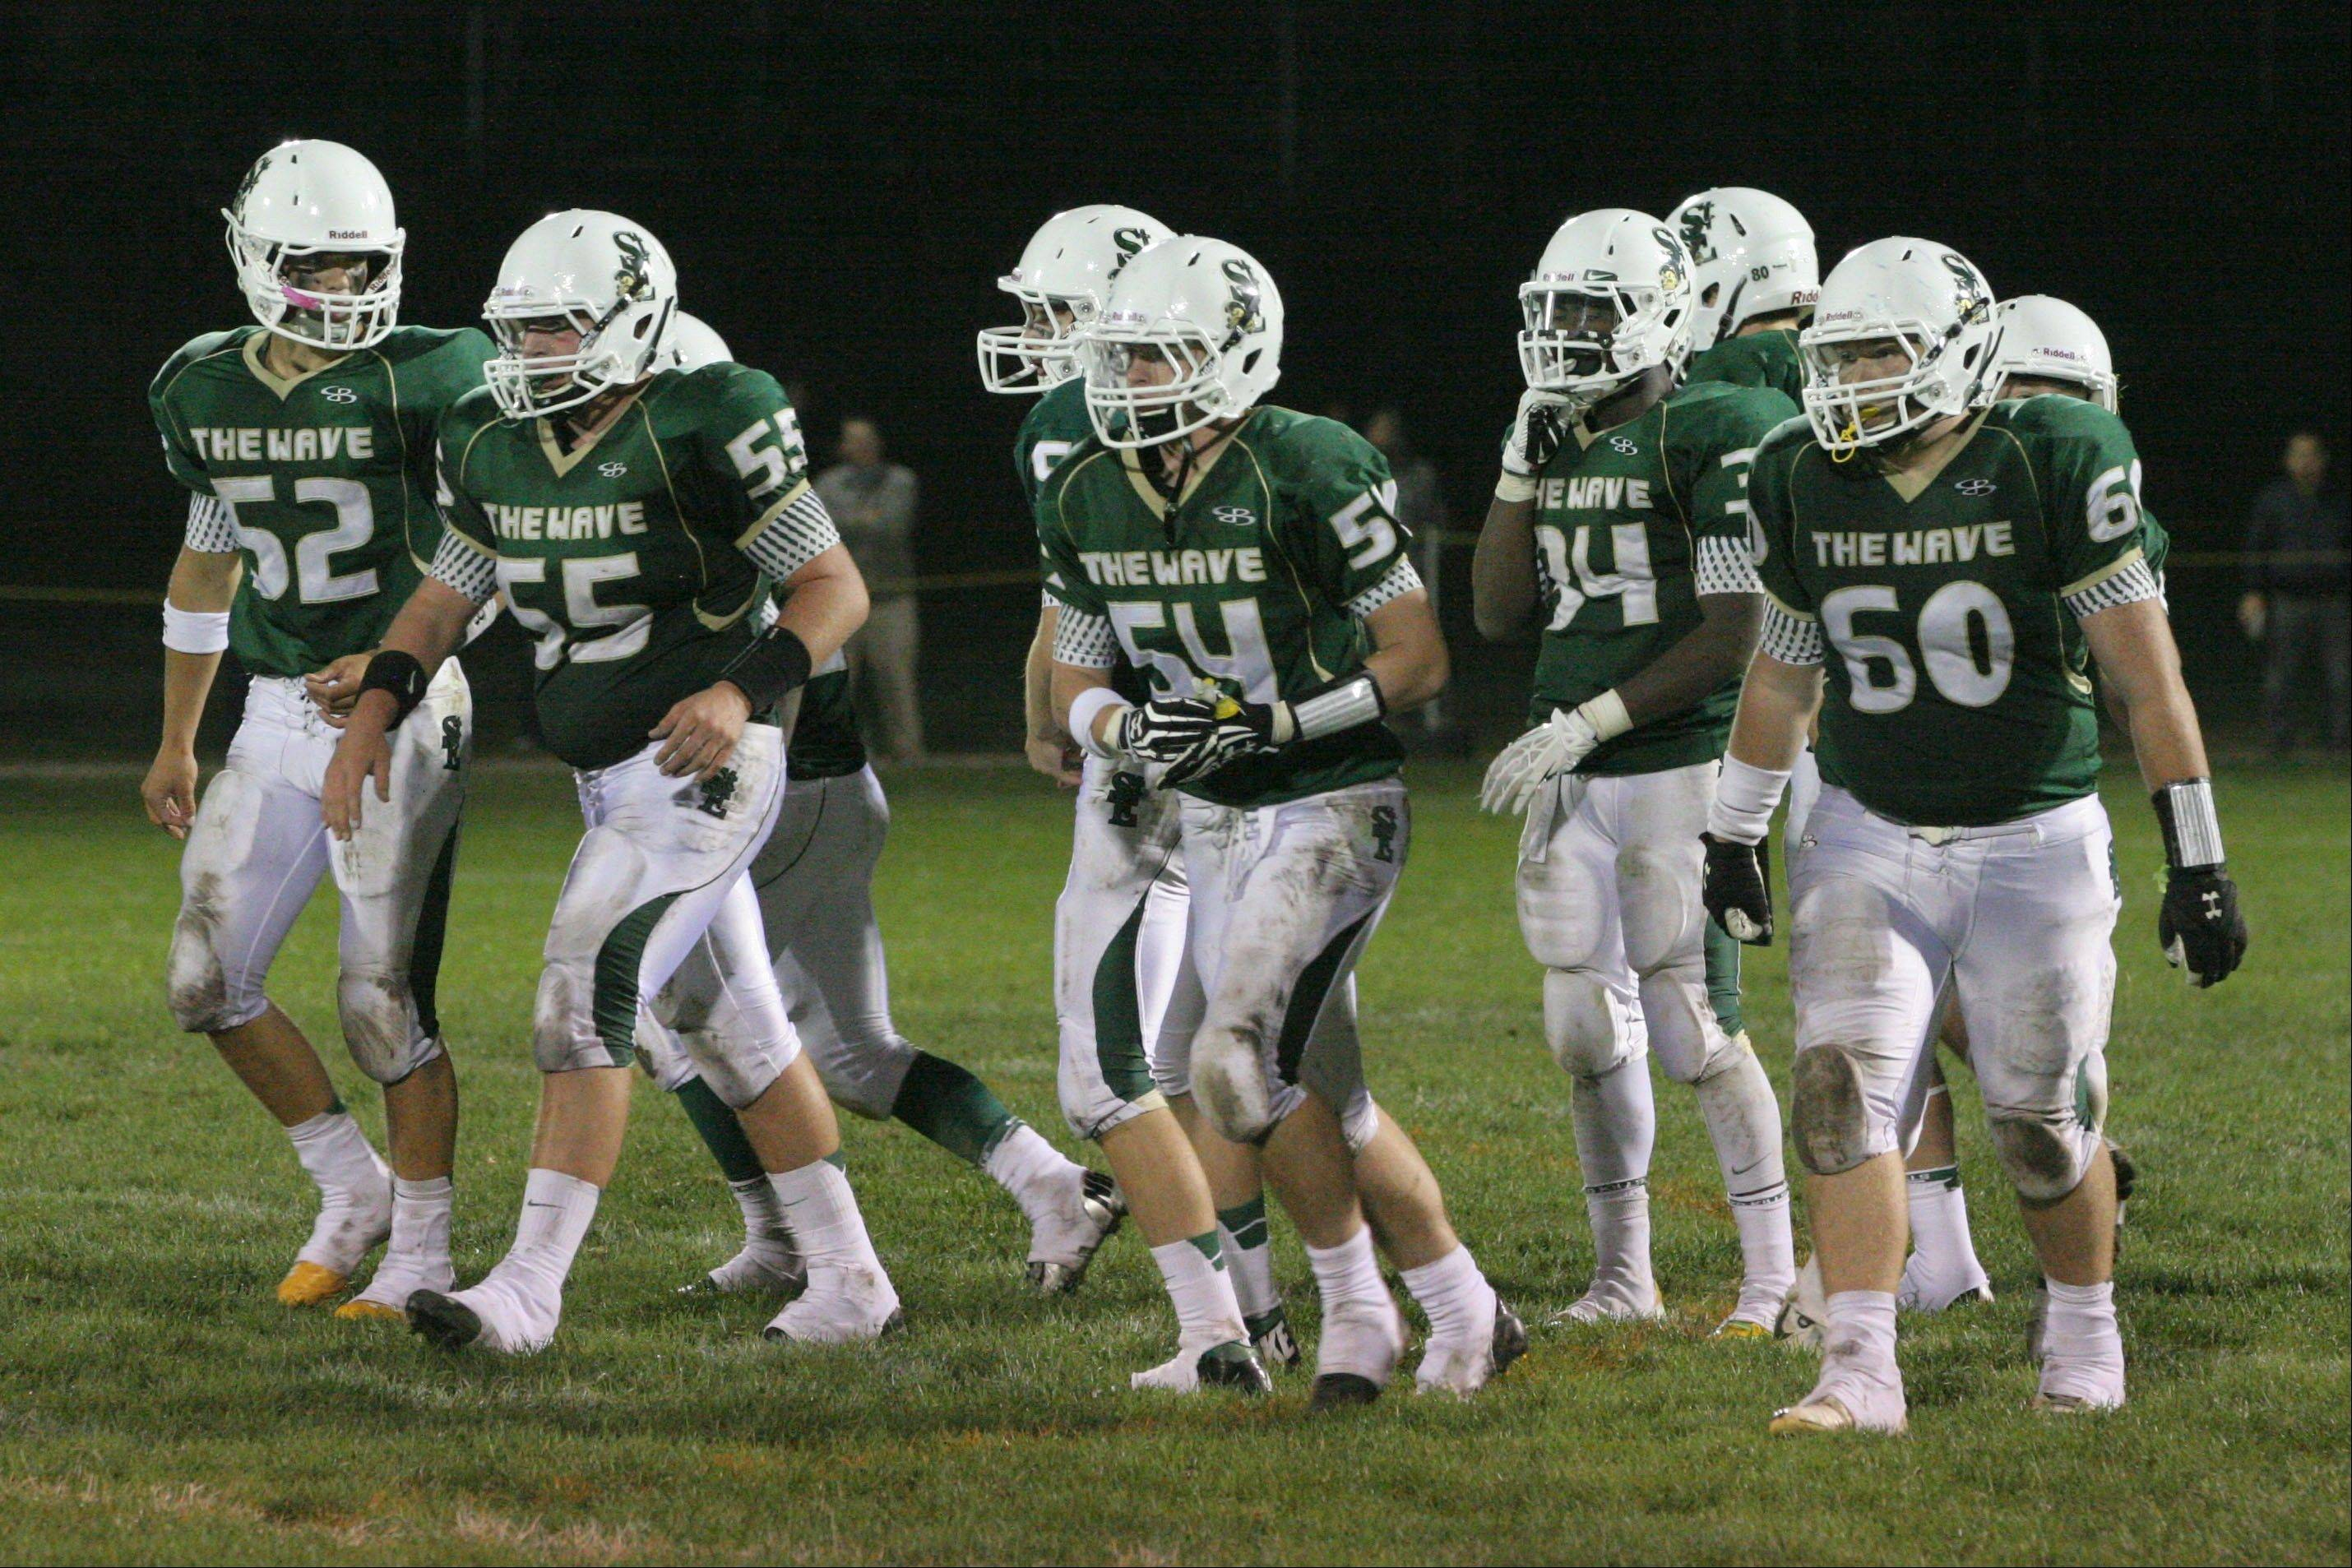 The St. Edward offensive line of Matthew Colasuono, from left, Collin Holte, Jack Tierney and Zach West lead senior running back DaVontae Elam (34) to the line of scrimmage against IC Catholic. St. Edward goes into Friday's game against Chicago Christian at 3-2 for the season.